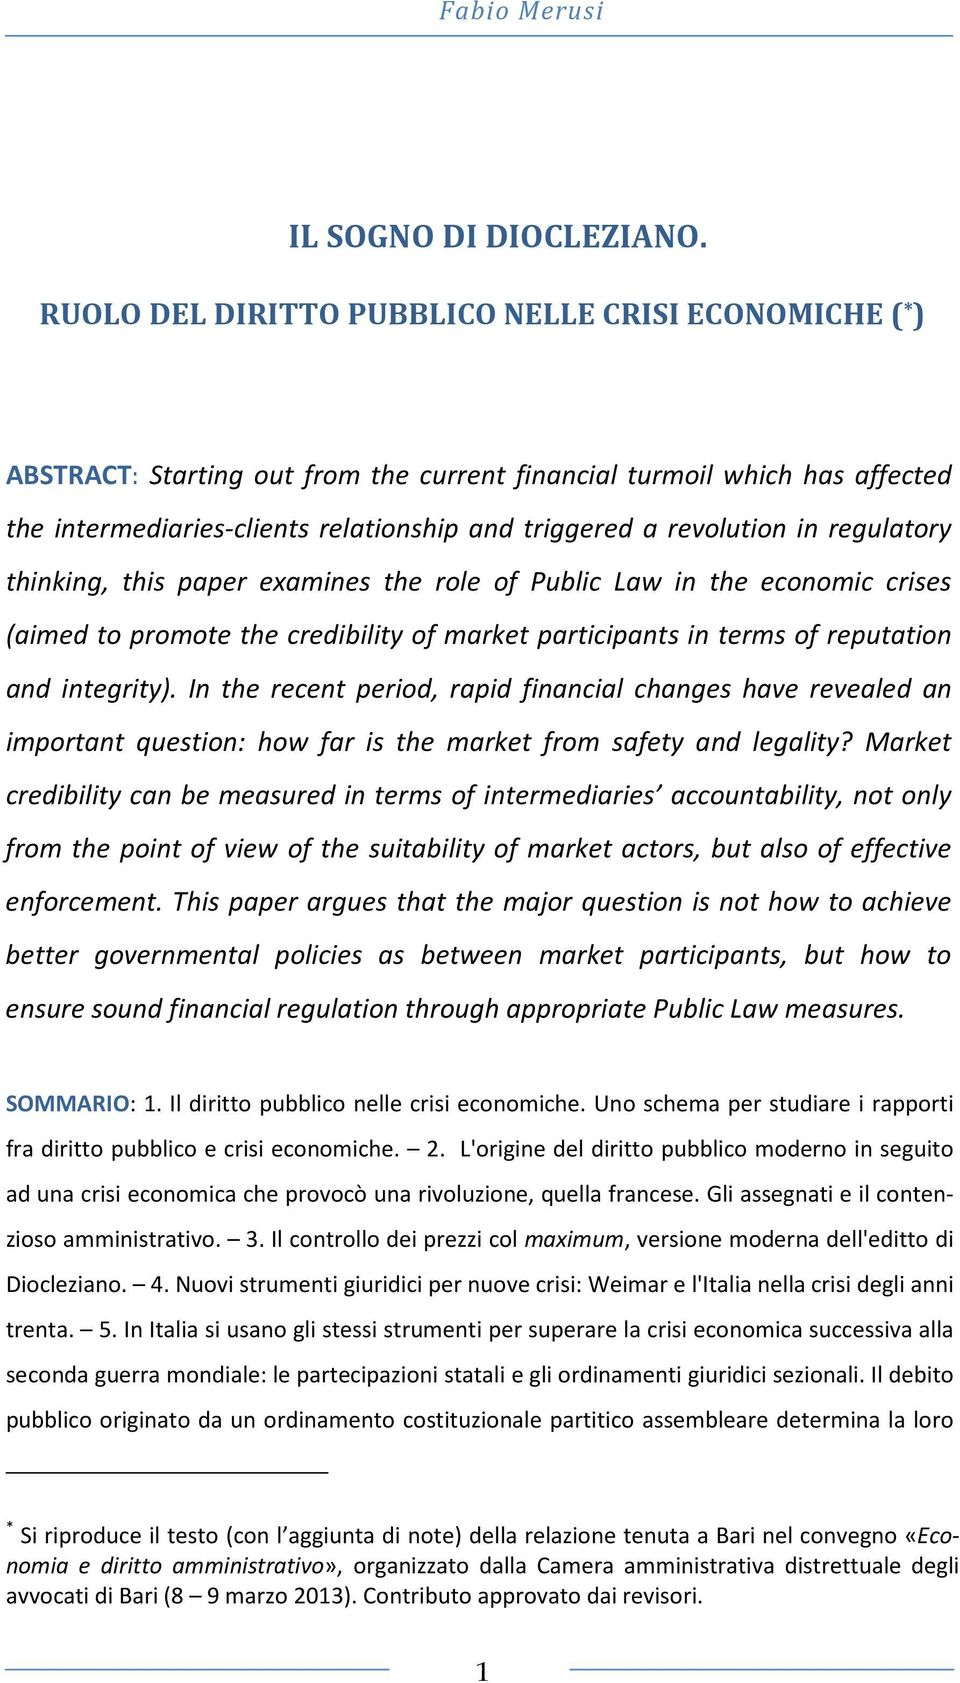 in regulatory thinking, this paper examines the role of Public Law in the economic crises (aimed to promote the credibility of market participants in terms of reputation and integrity).